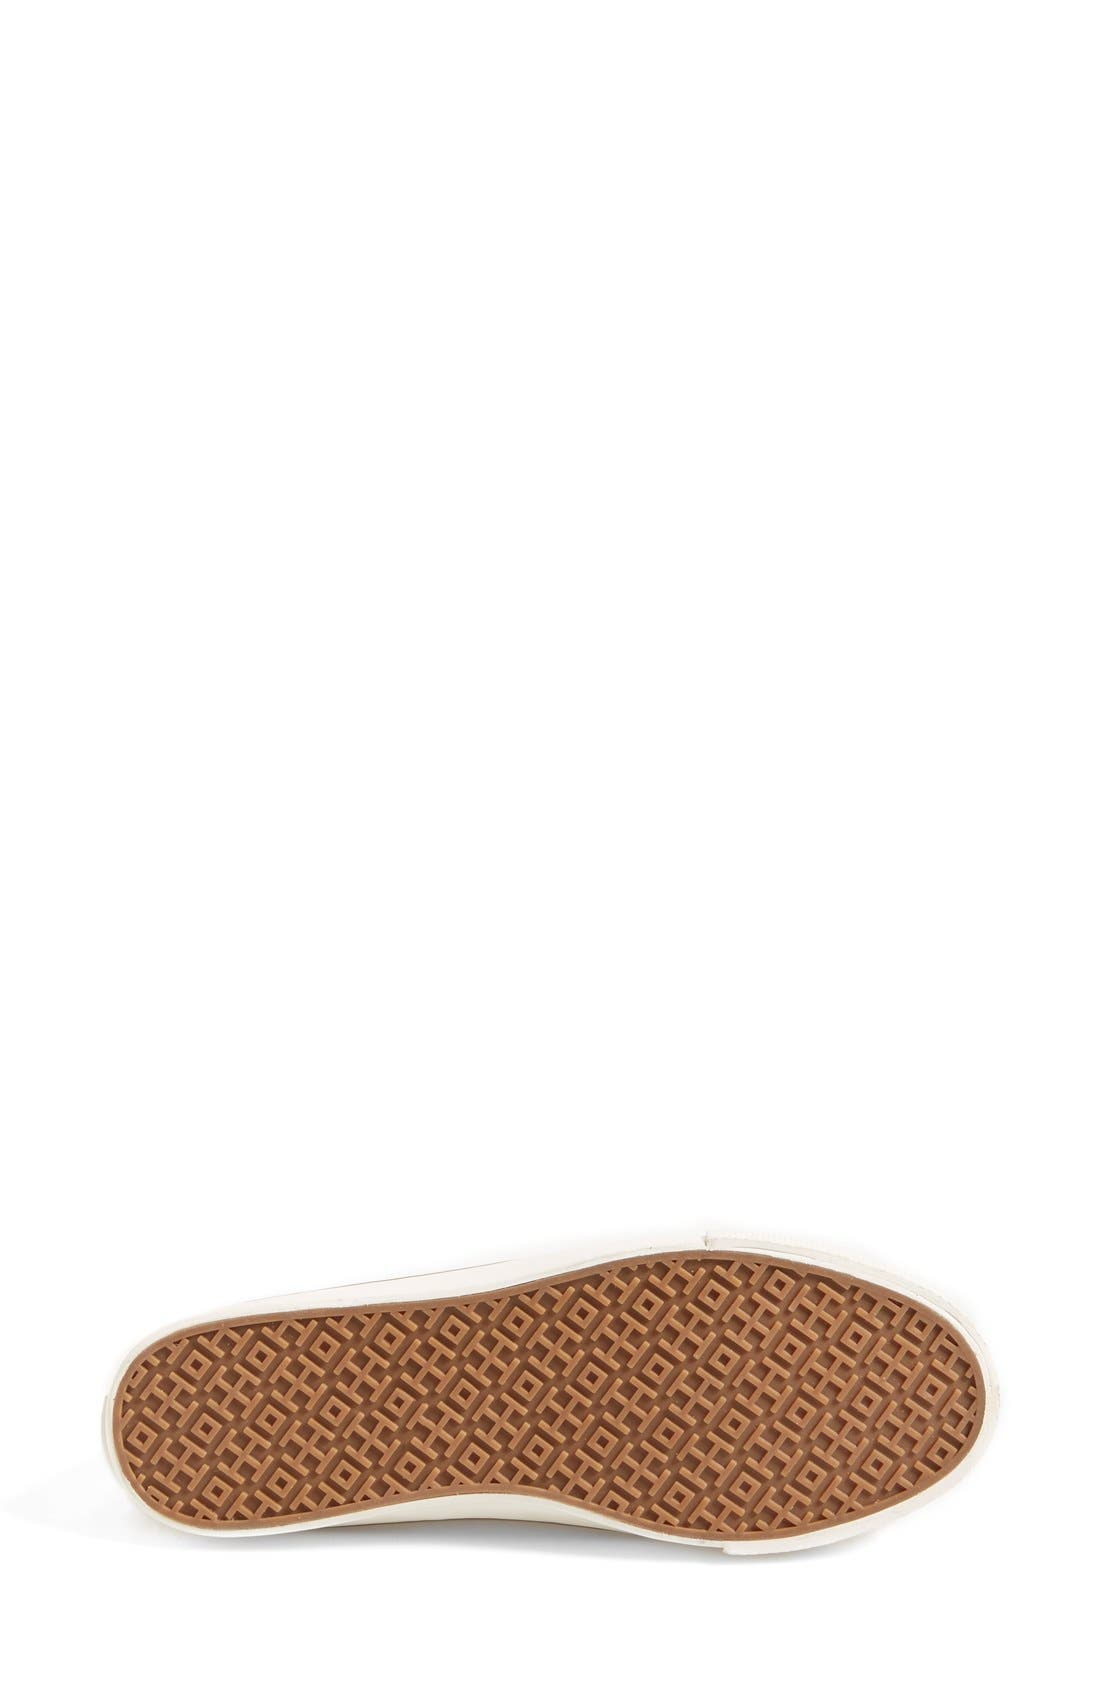 'Daisy' Perforated Sneaker,                             Alternate thumbnail 2, color,                             104